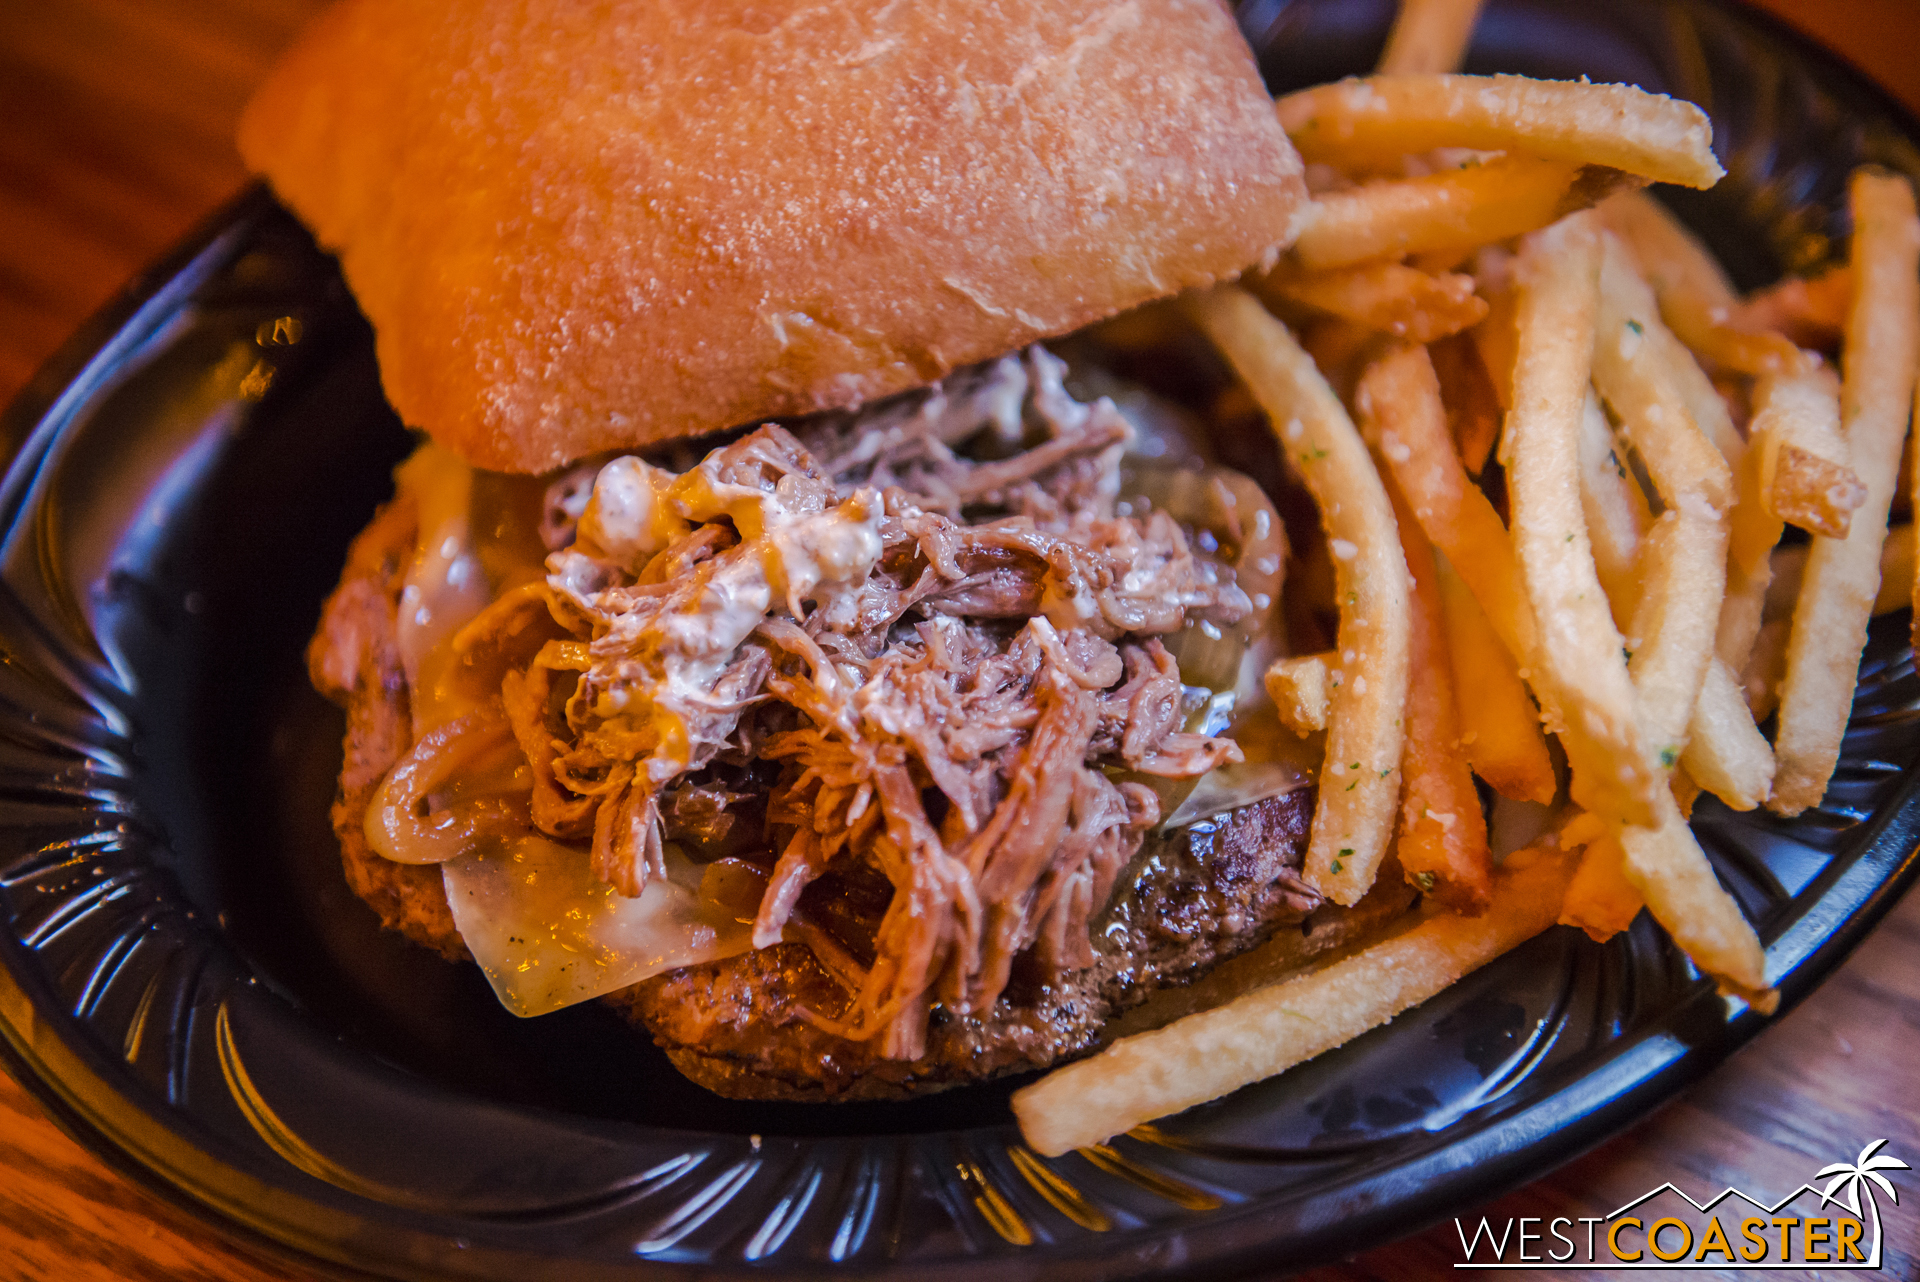 The Beast's Burger was an umami overload, and that's not necessarily a bad thing. Meat on top of meat with hearty gruyere cheese, this burger is definitely targeted at carnivores. It's bold and befits its namesake, and the fries add a great pairing.